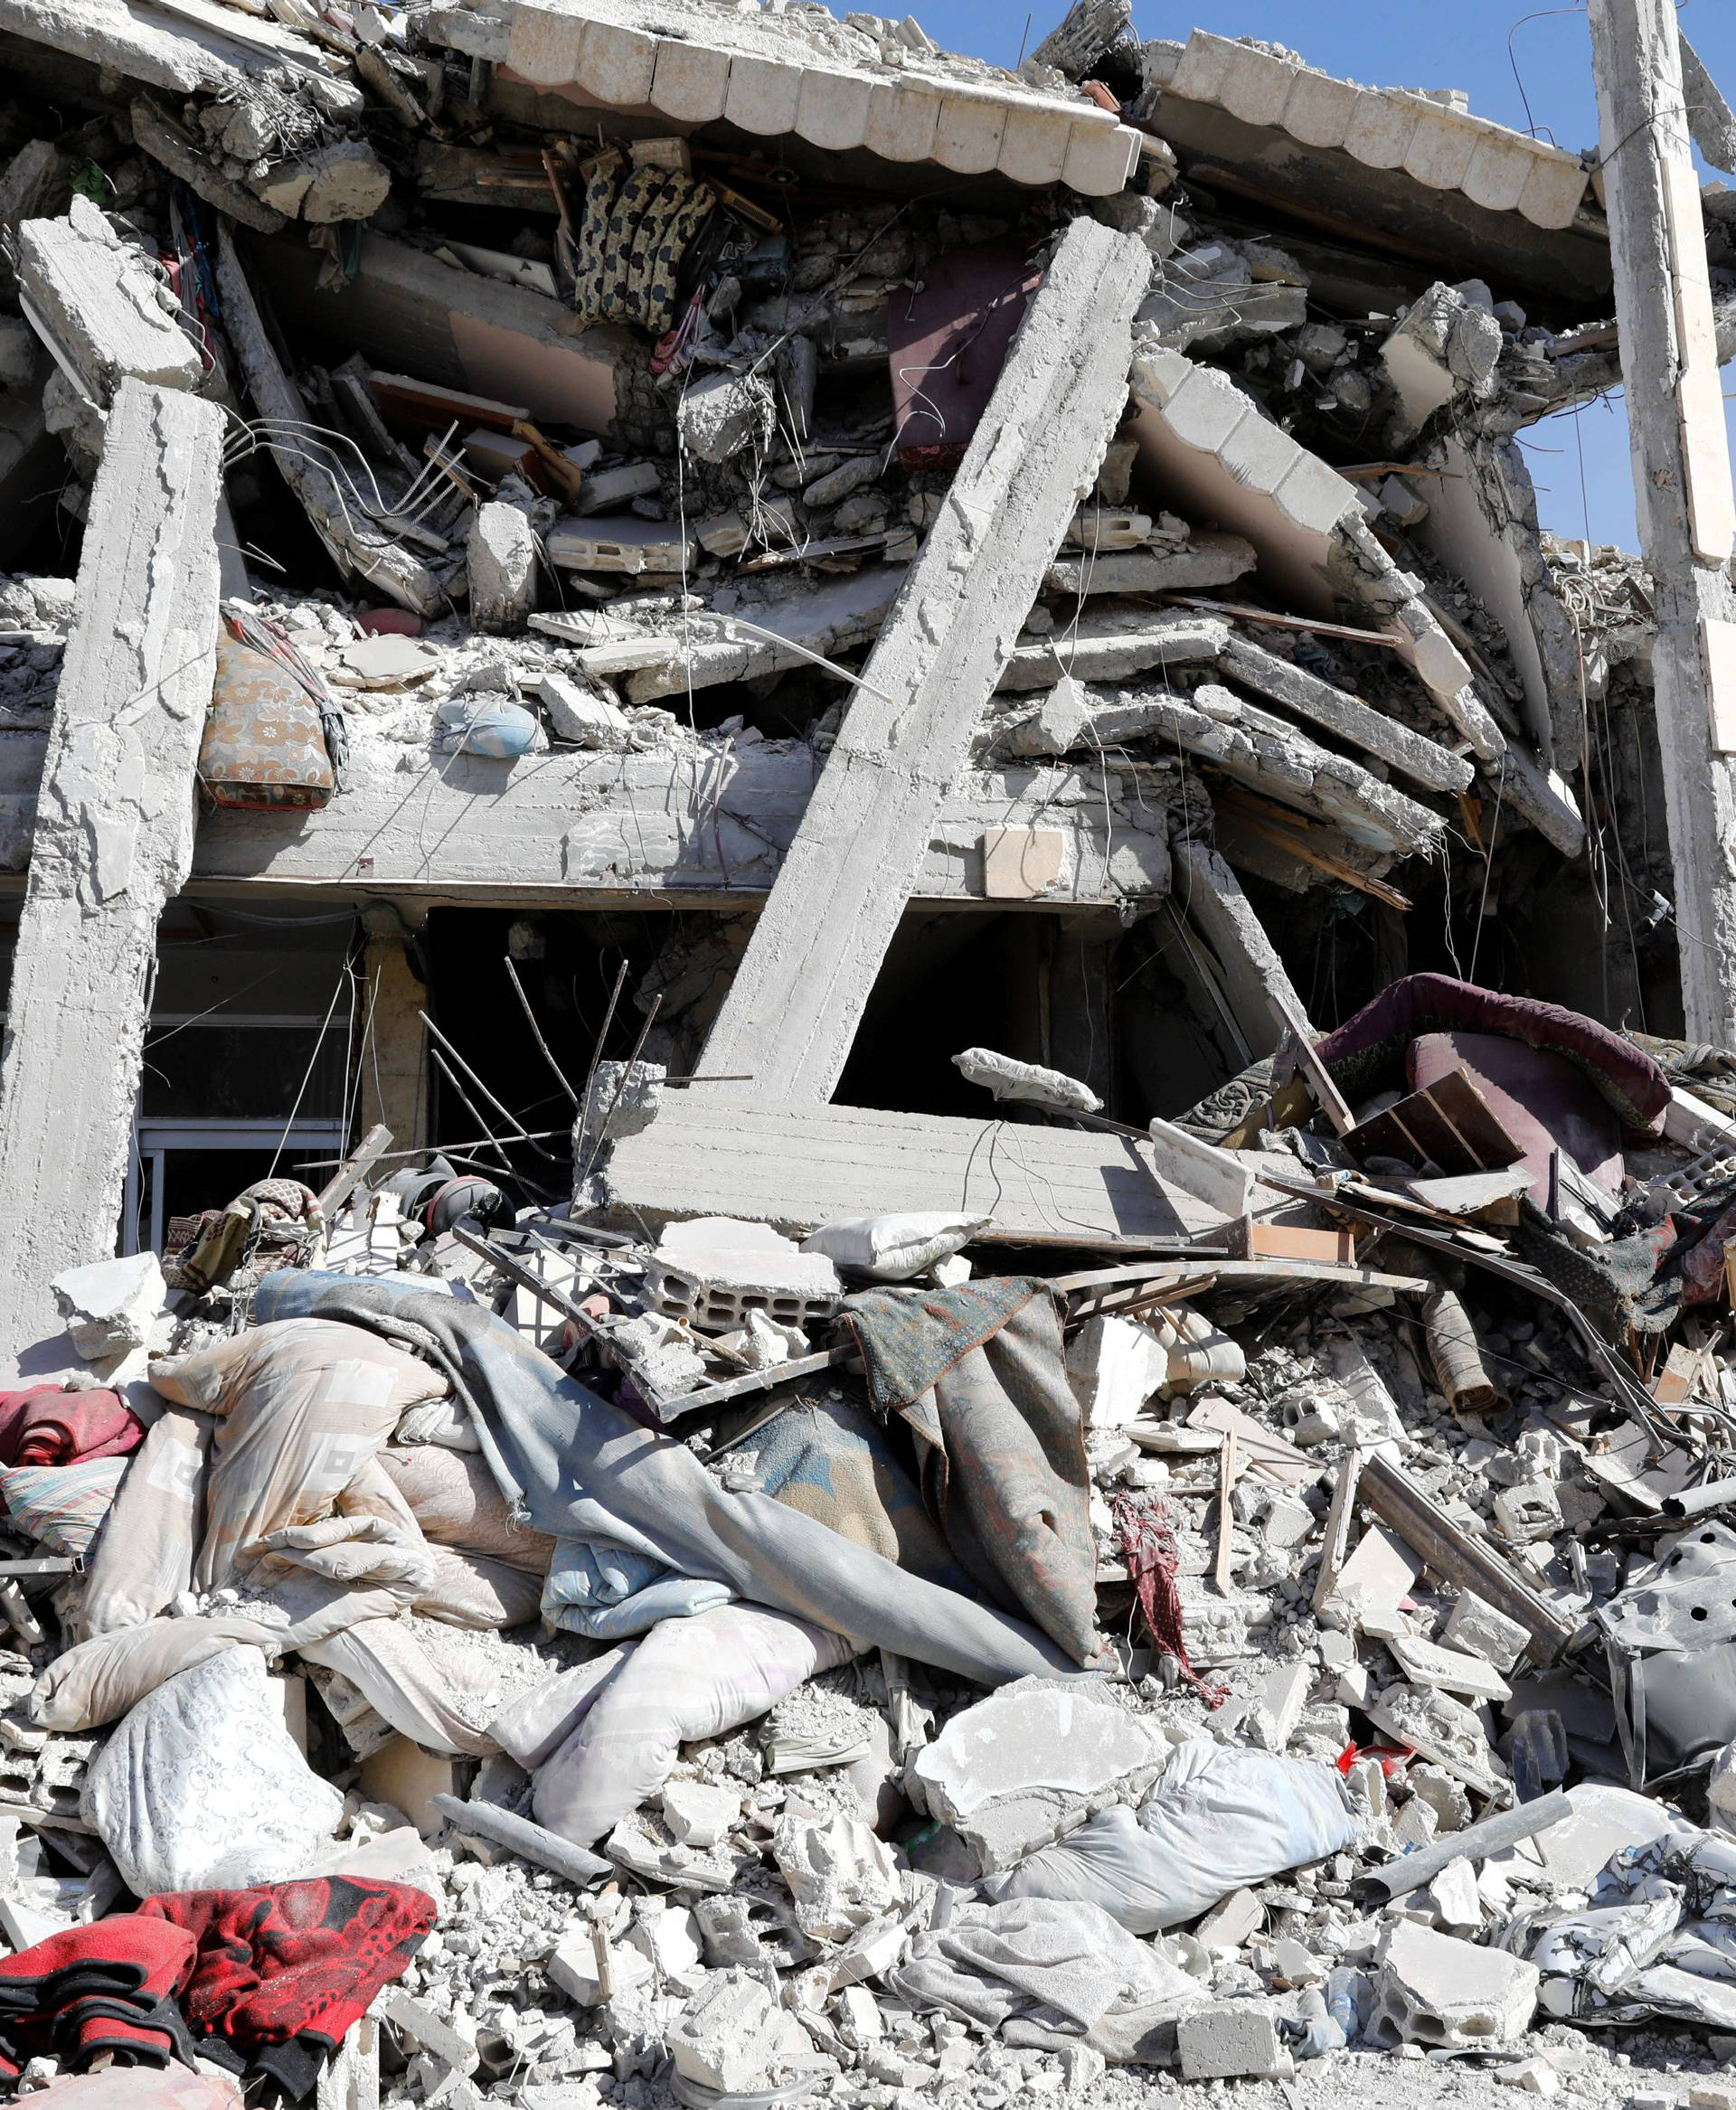 General view of a collapsed building due to fighting in Raqqa's old city in Syria